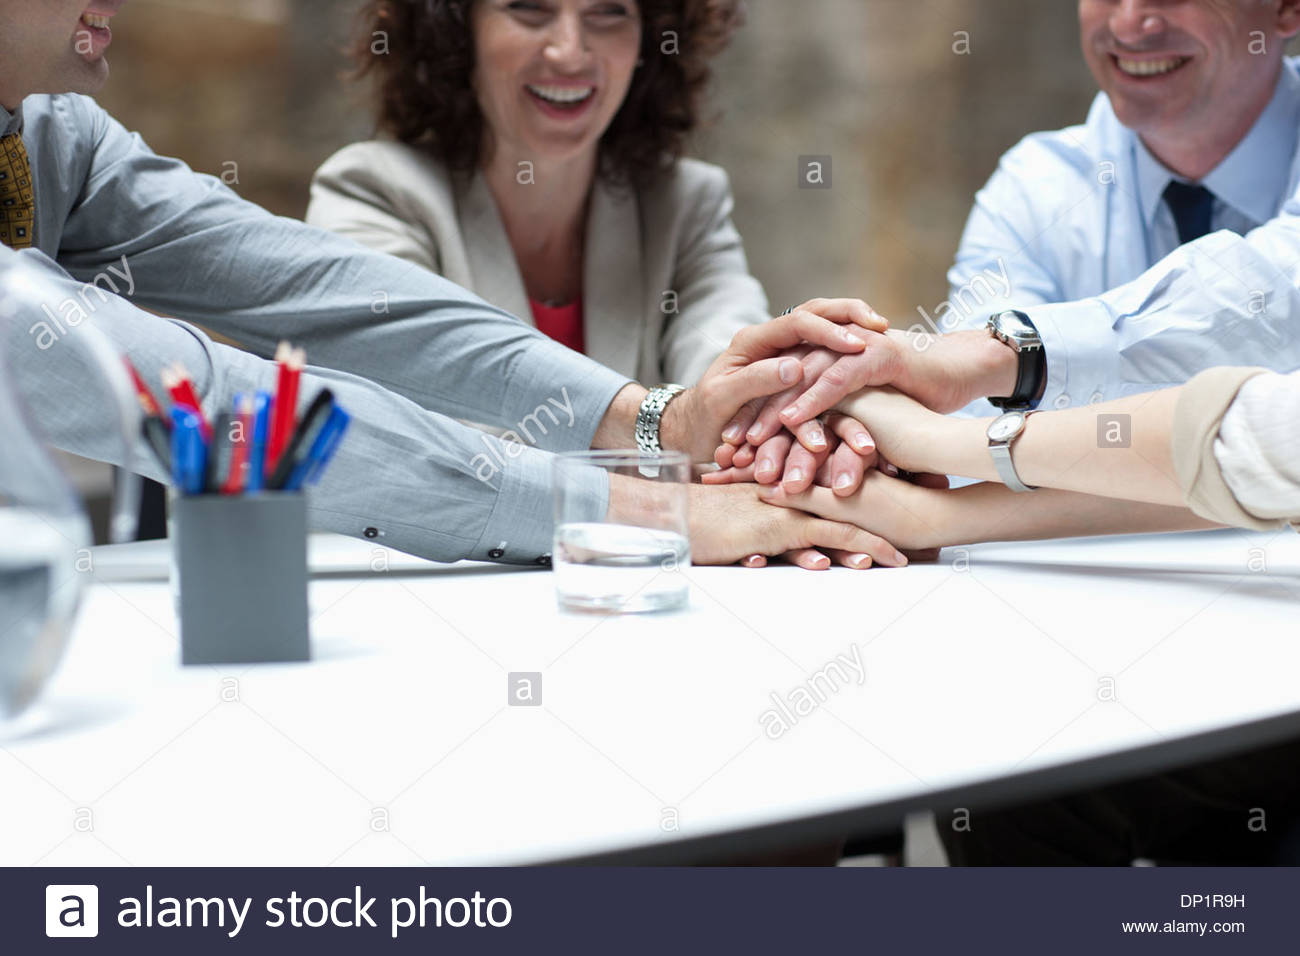 Business people stacking hands in meeting - Stock Image